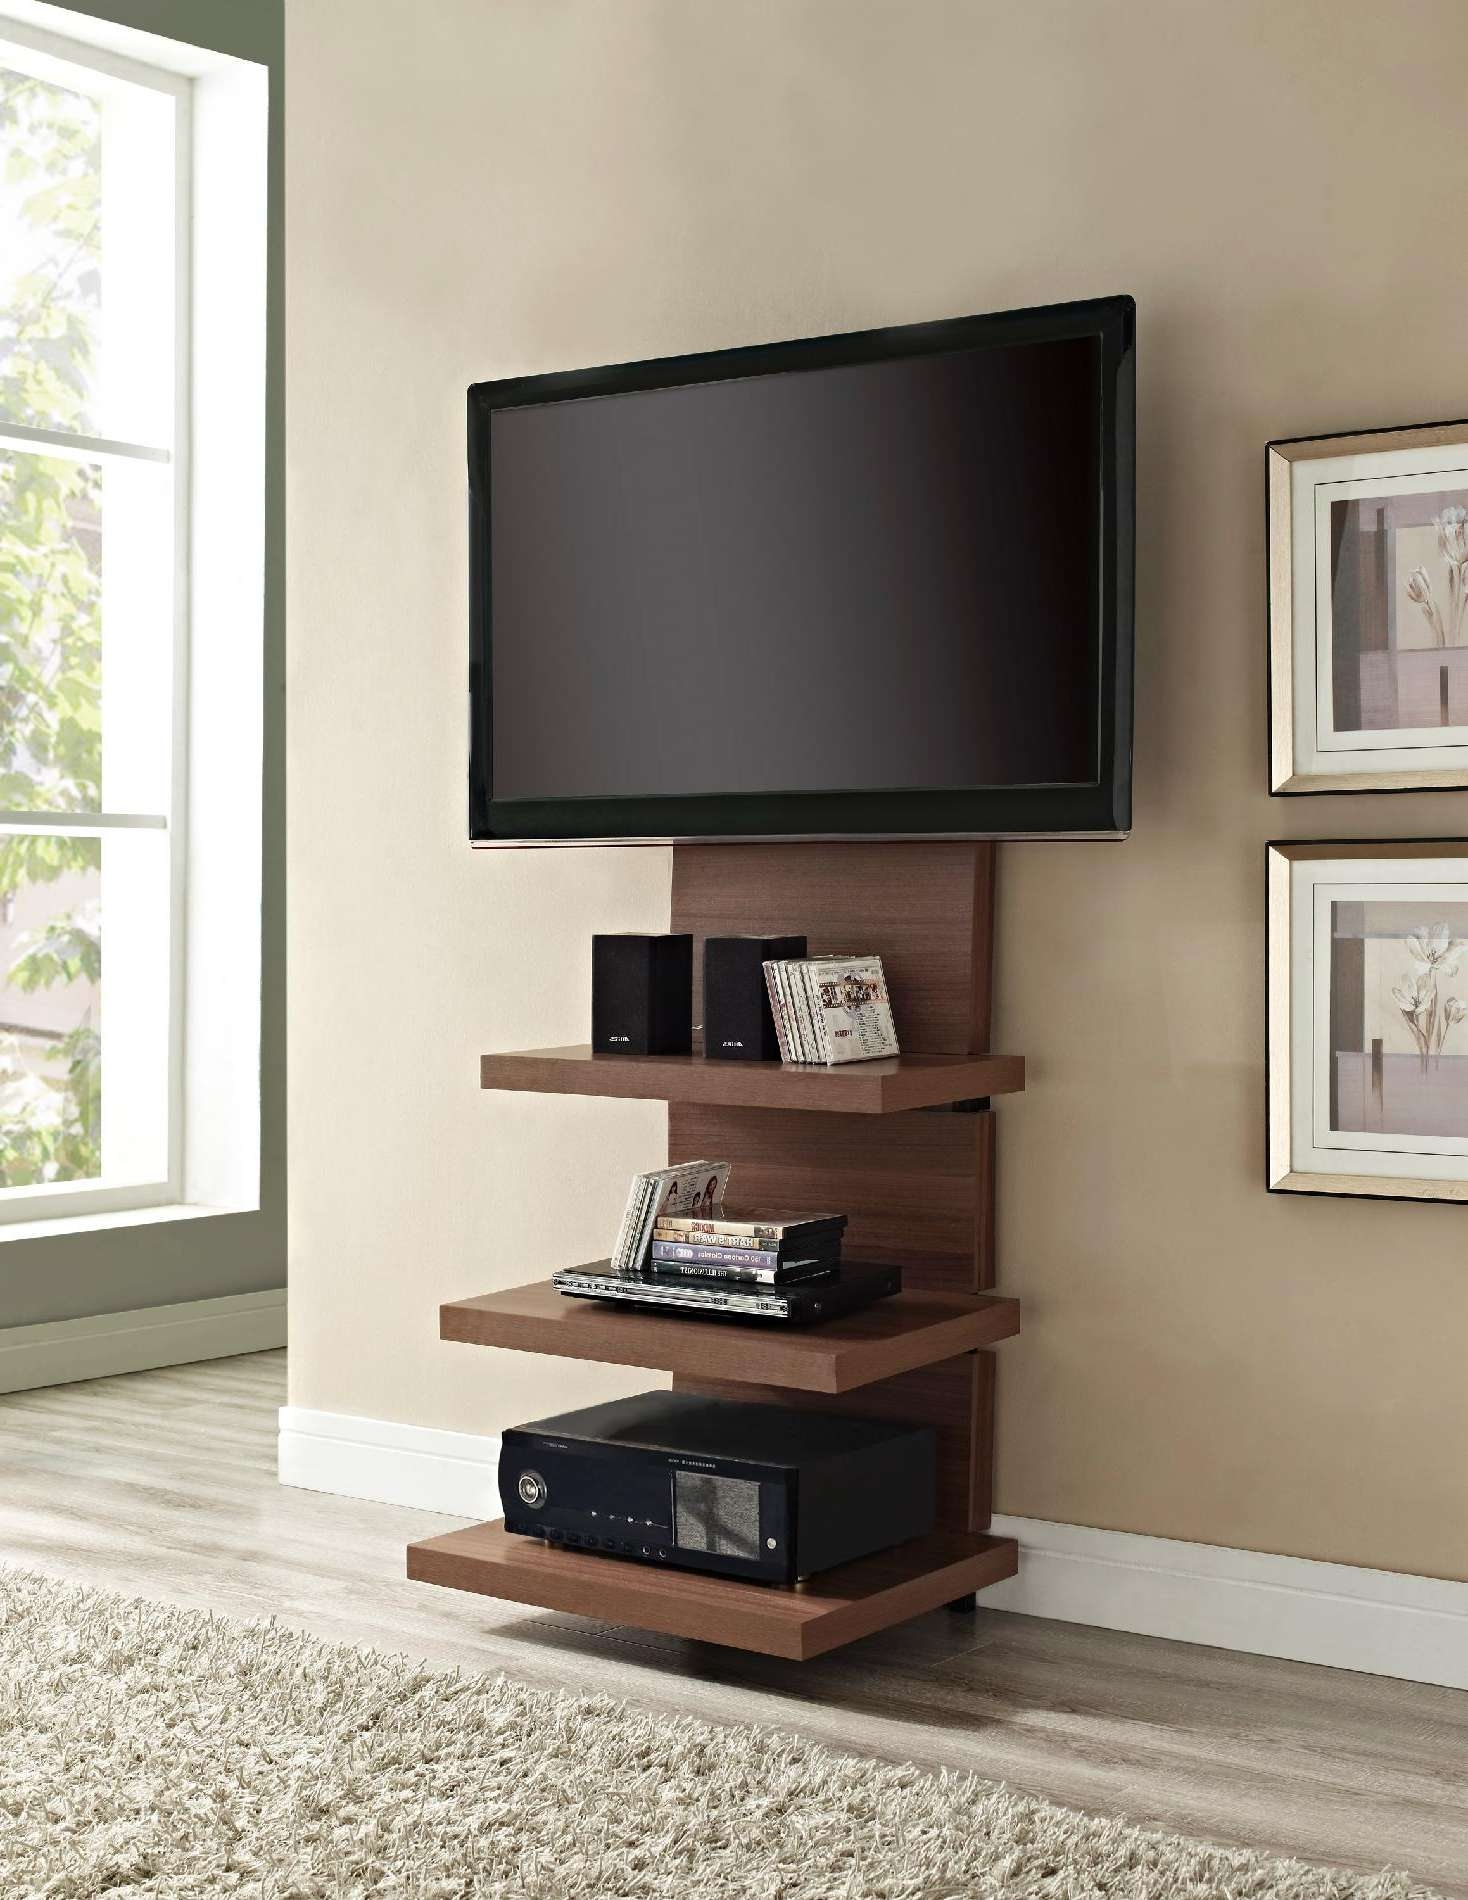 Tv Stand : Surprisingl Skinny Tv Stand Image Inspirations Within Tall Skinny Tv Stands (View 3 of 15)